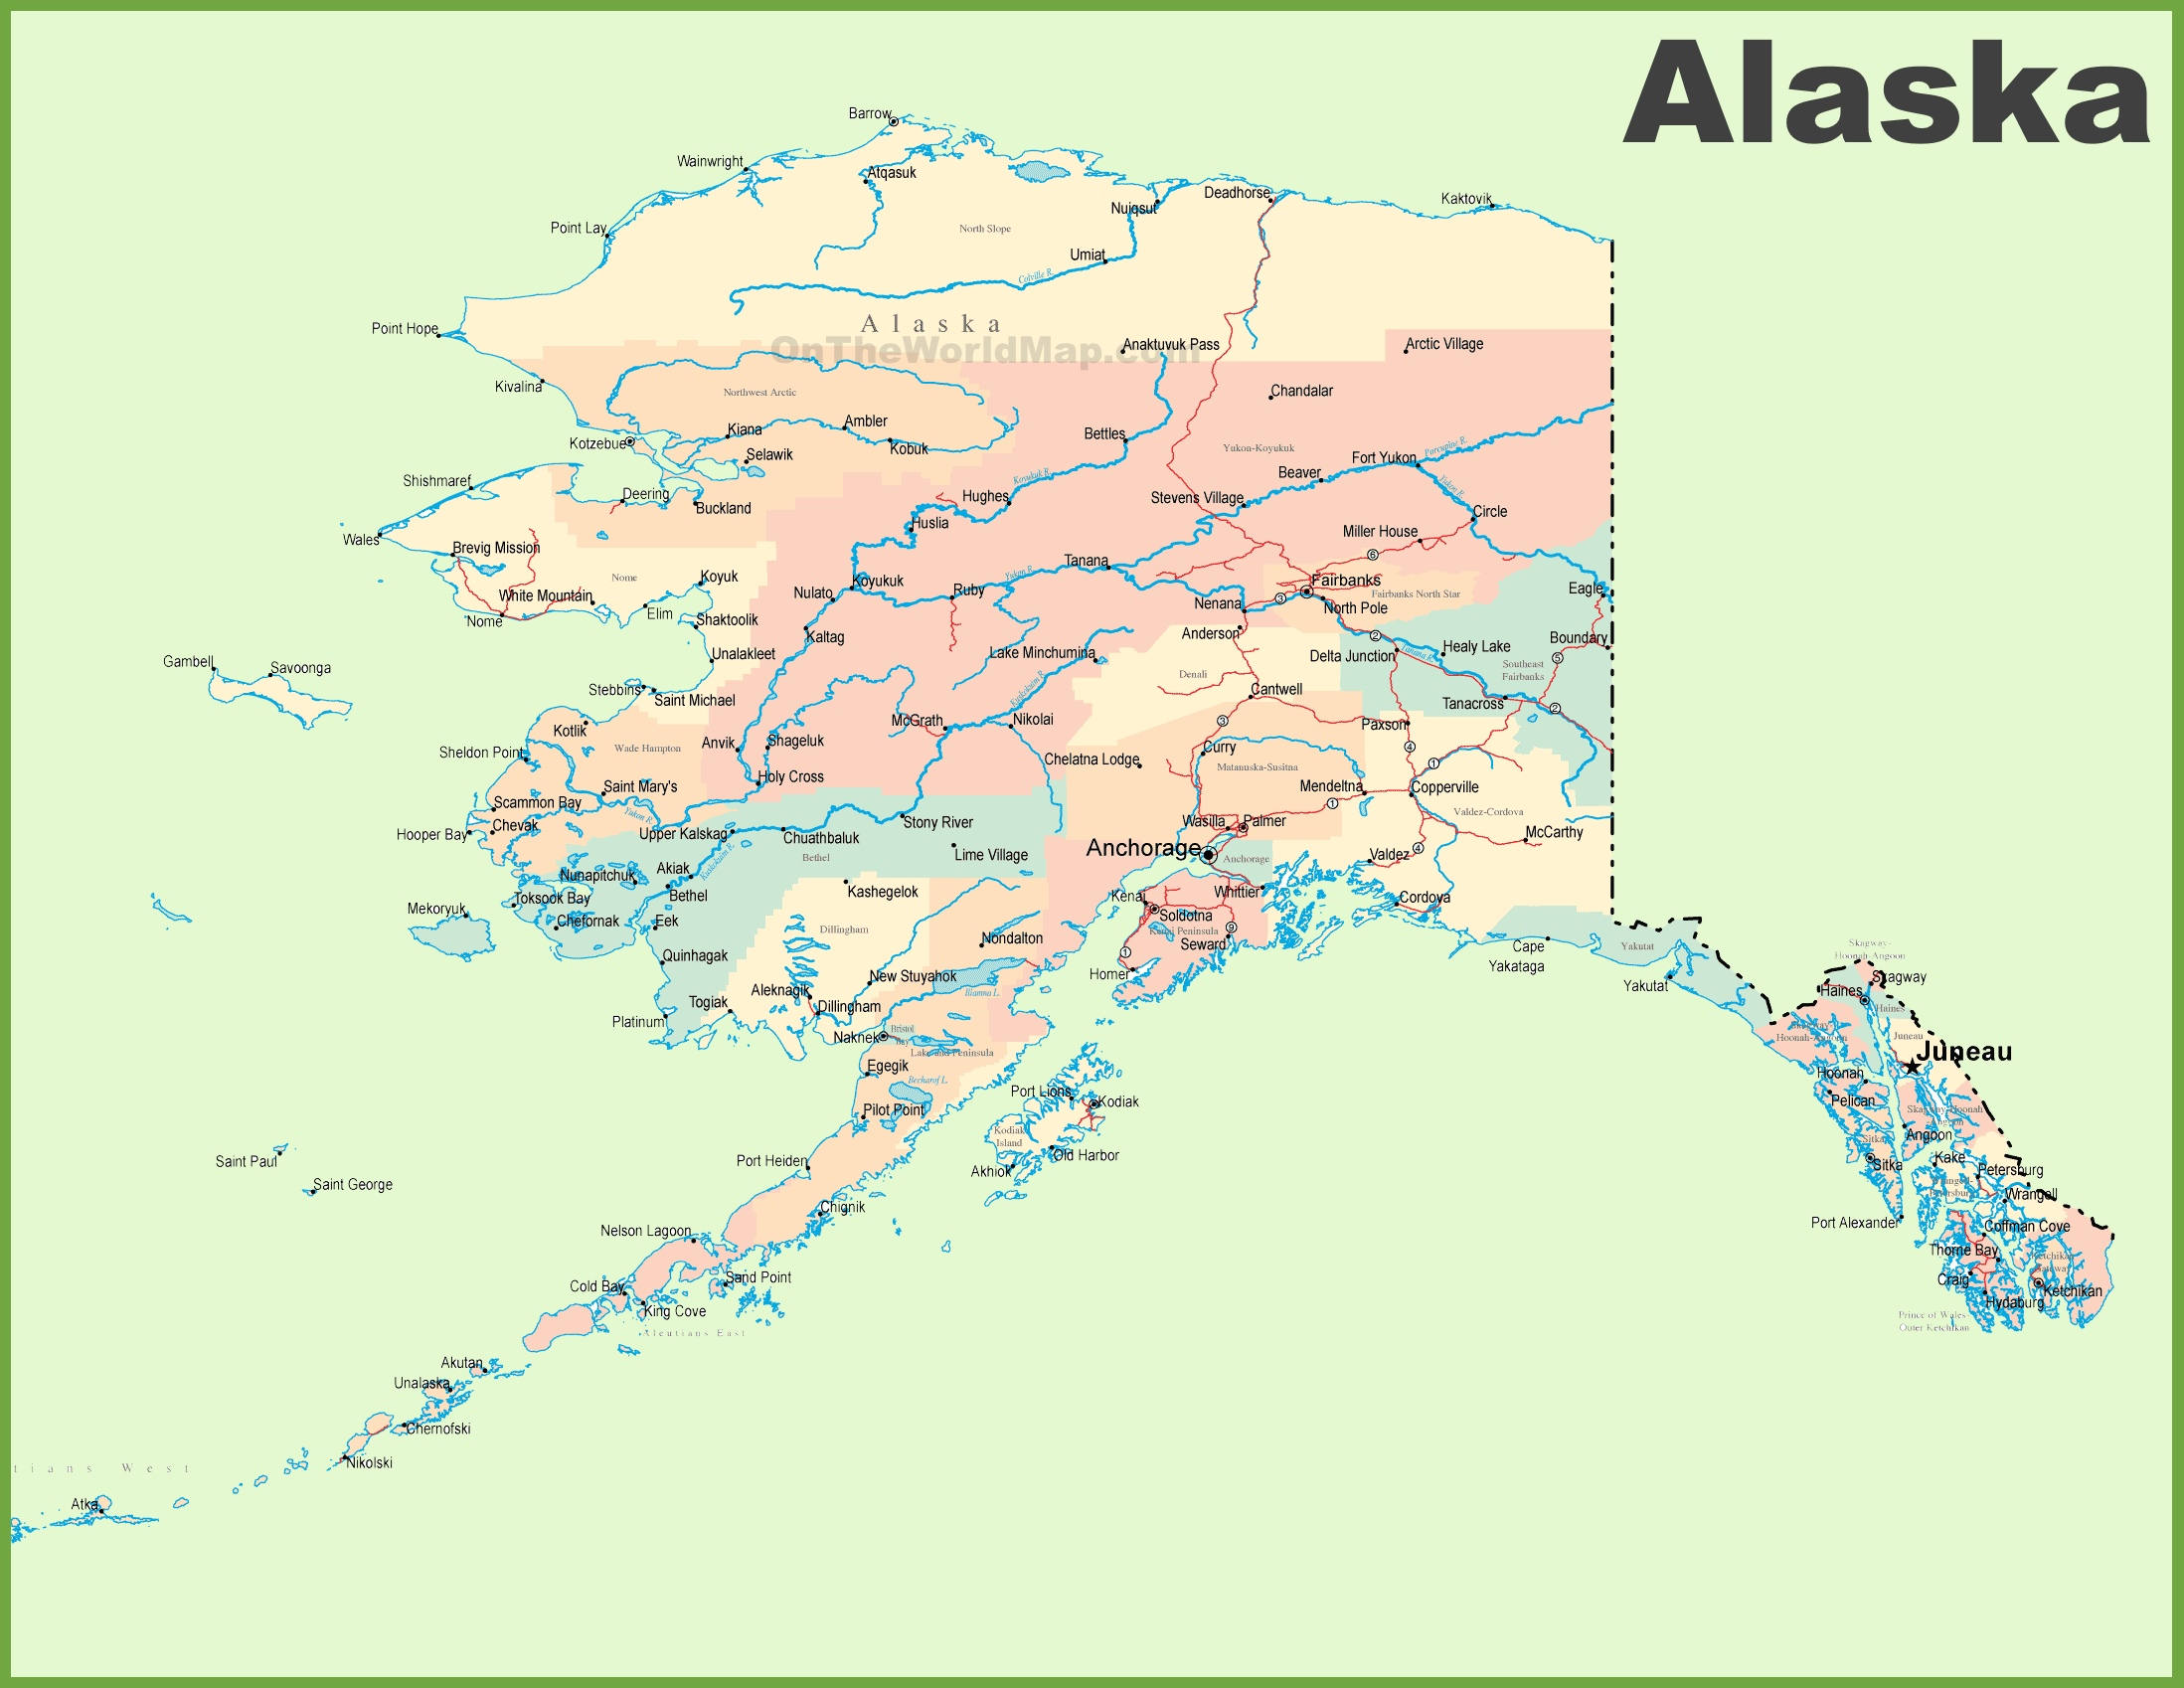 Alaska State Maps USA Maps Of Alaska AK - Alaska map usa